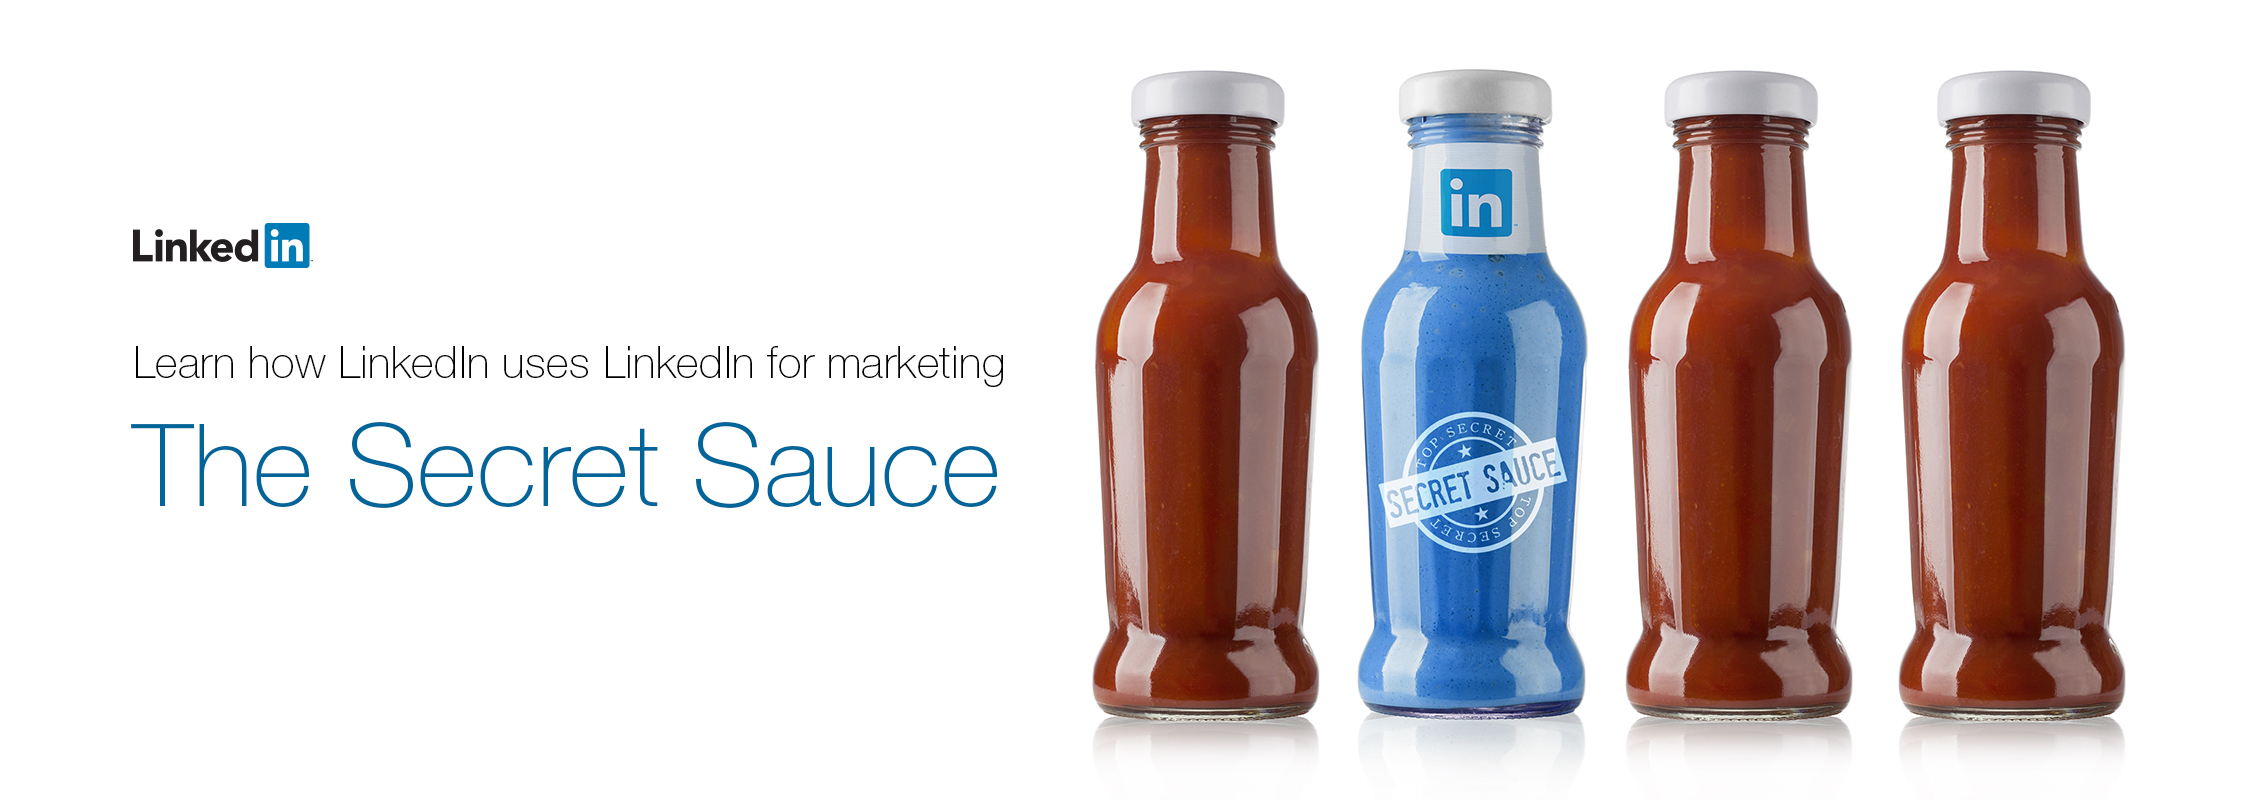 The Most Effective LinkedIn Marketing Methods – According to Science